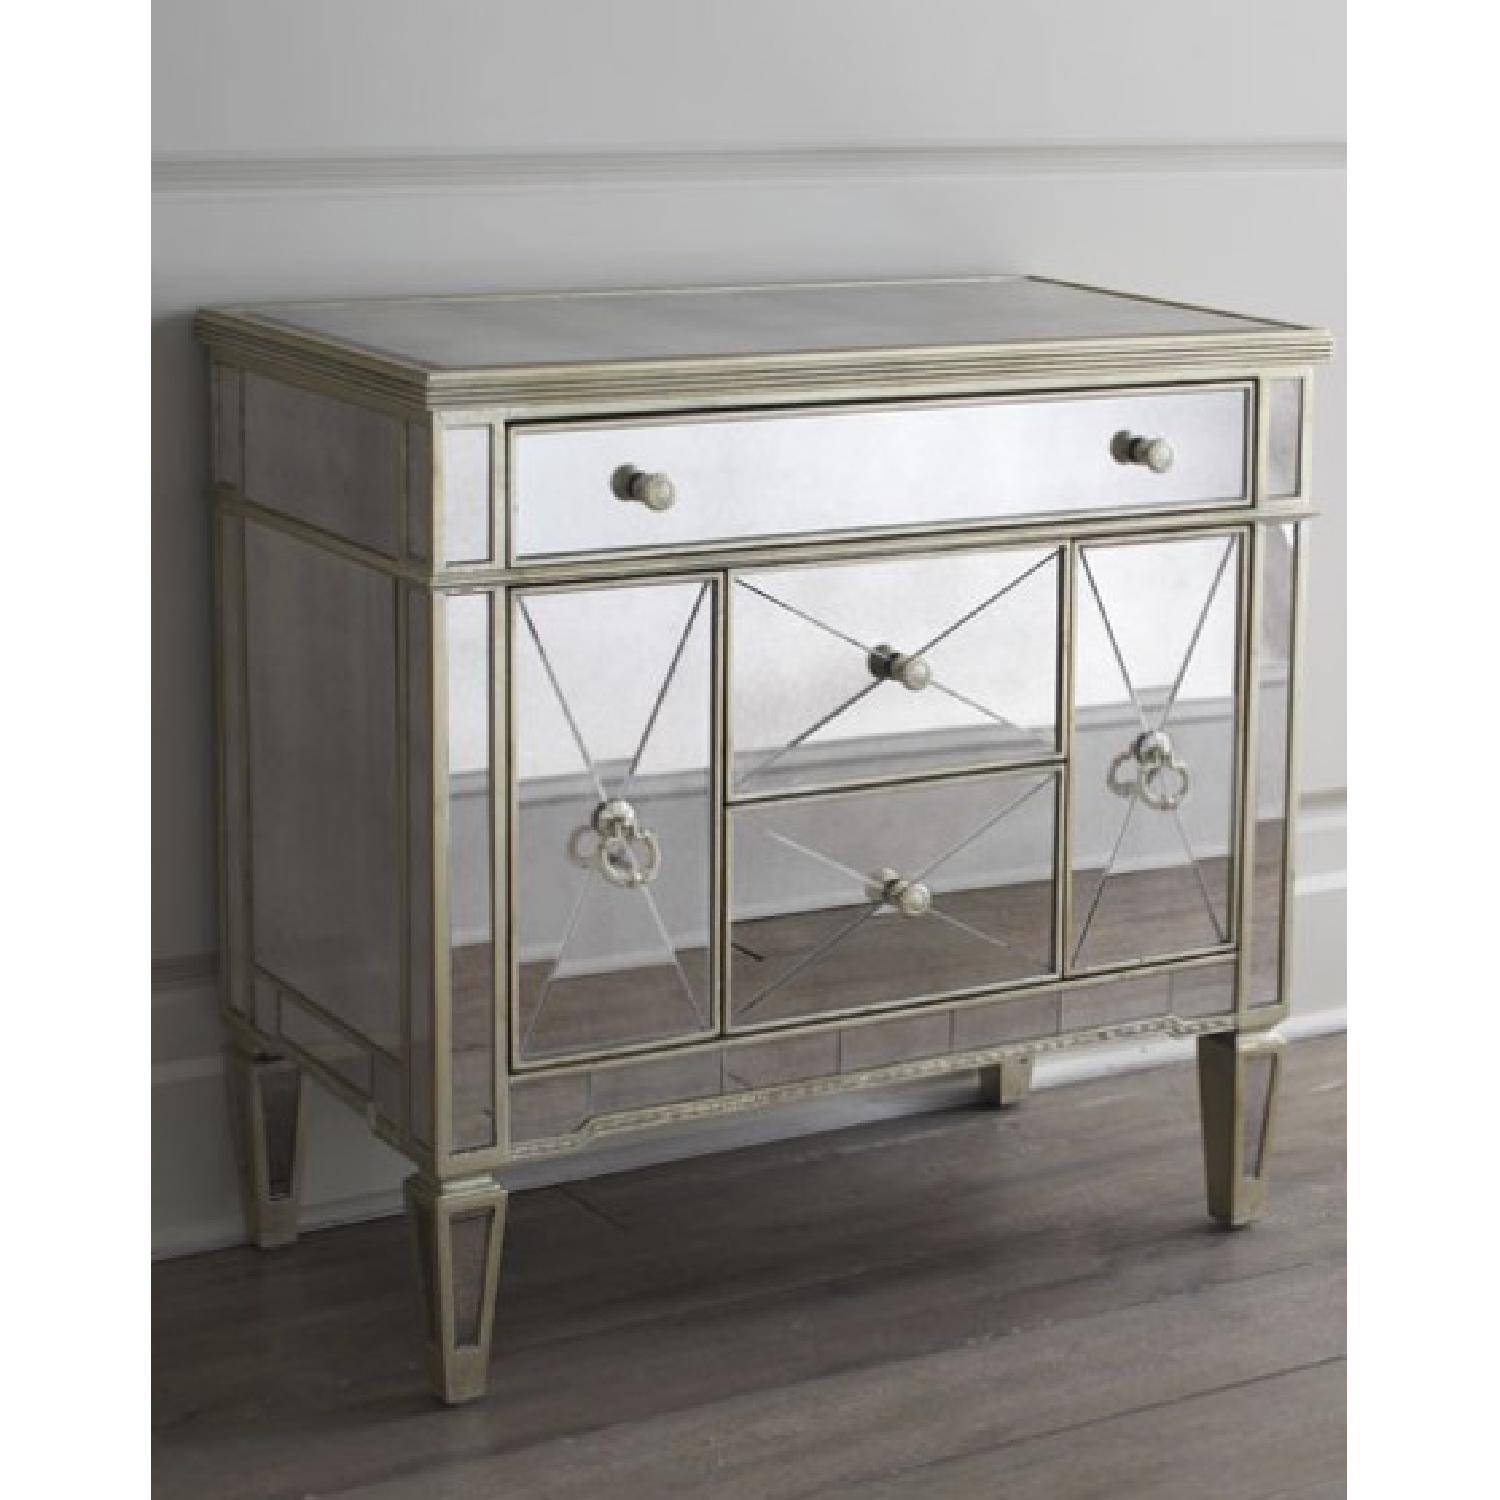 Neiman Marcus Antiqued Mirrored Chests/Dressers